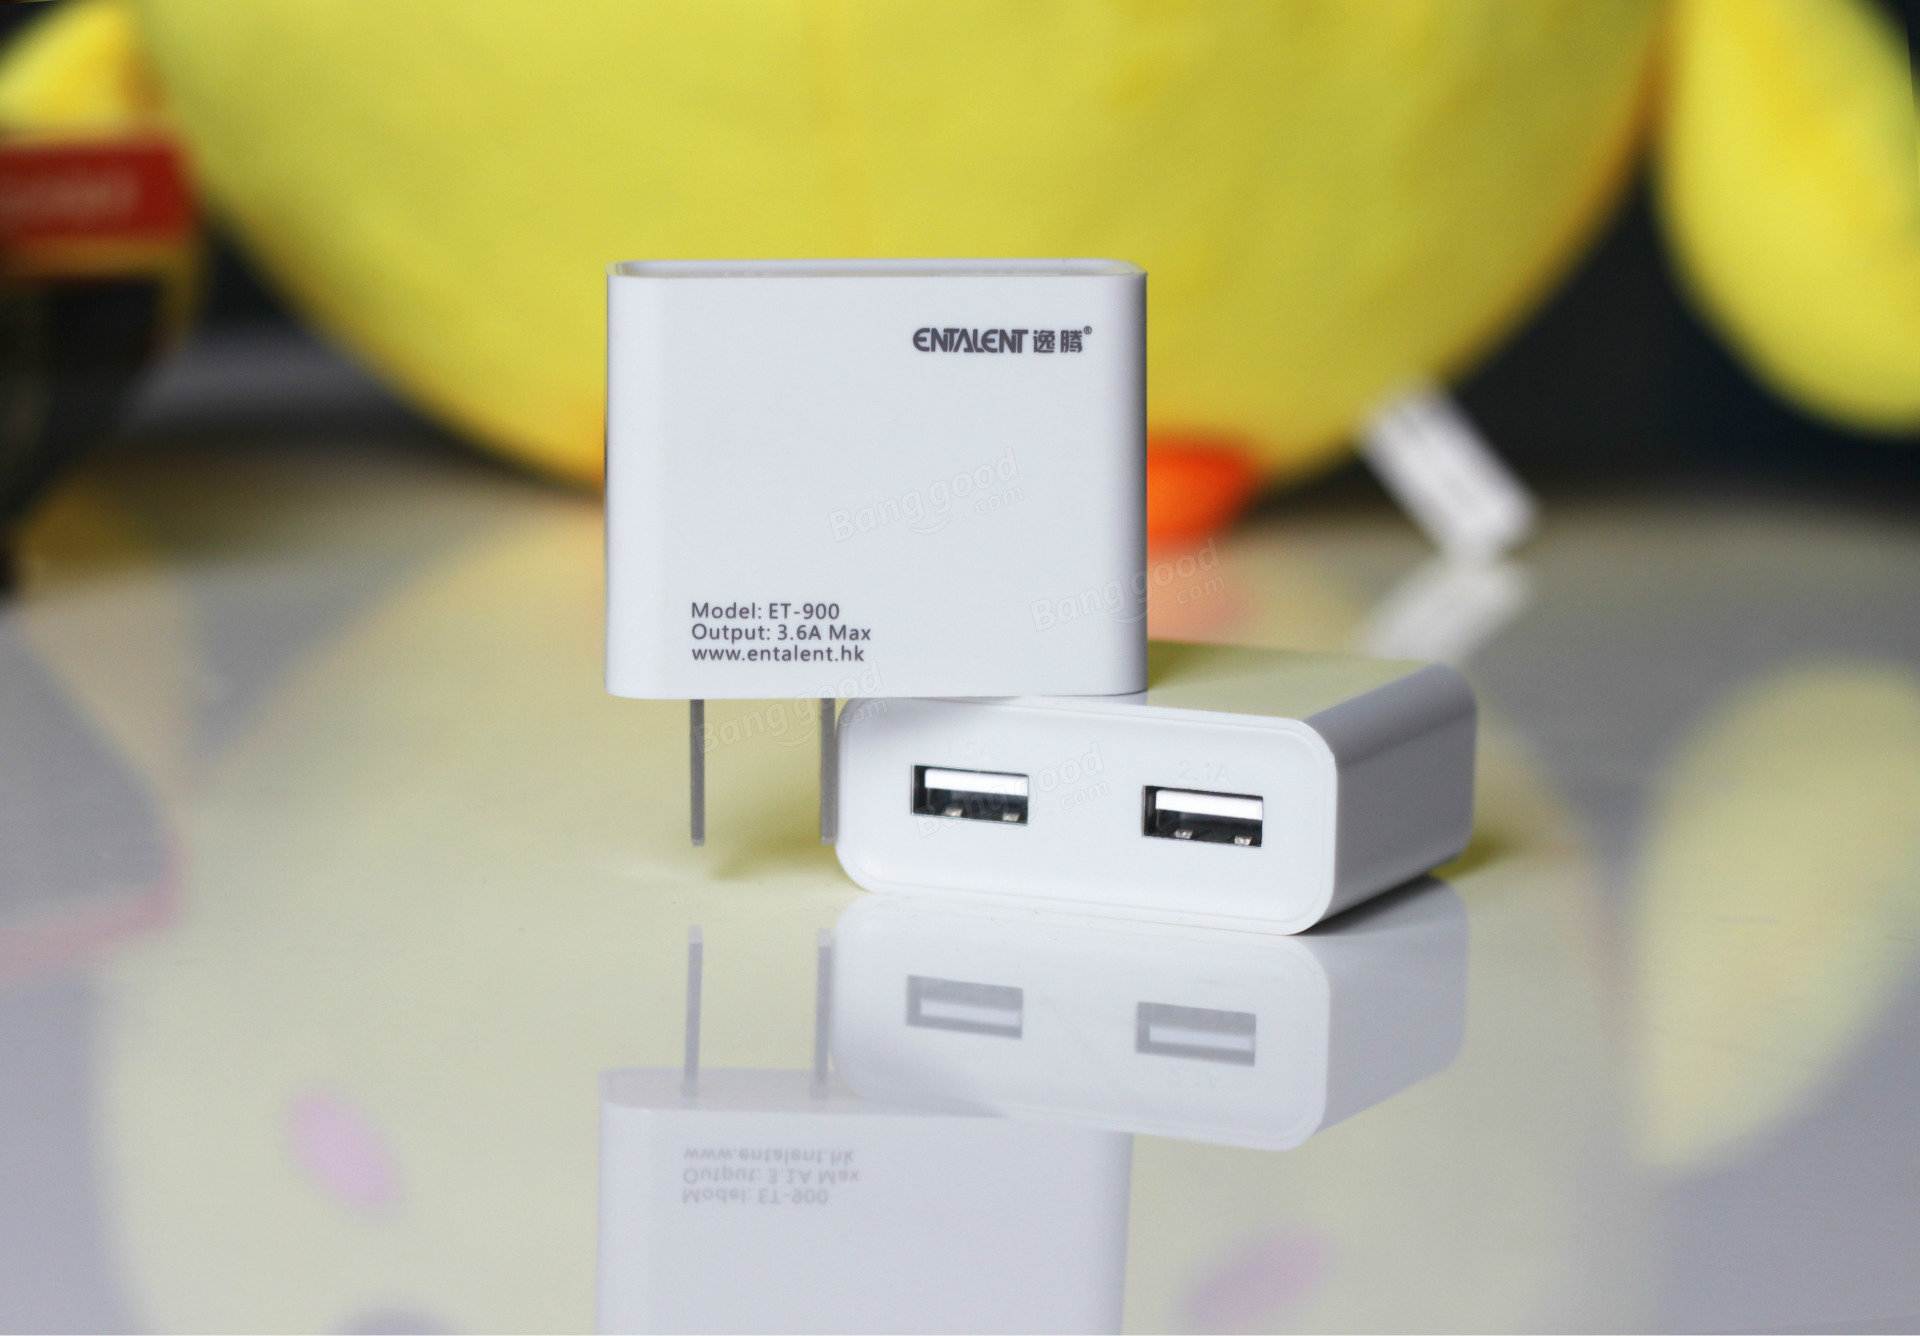 ENTALENT 2.1A General Portable Double USB Ports Charger Plug For iPhone iPad Samsung Xiaomi HTC